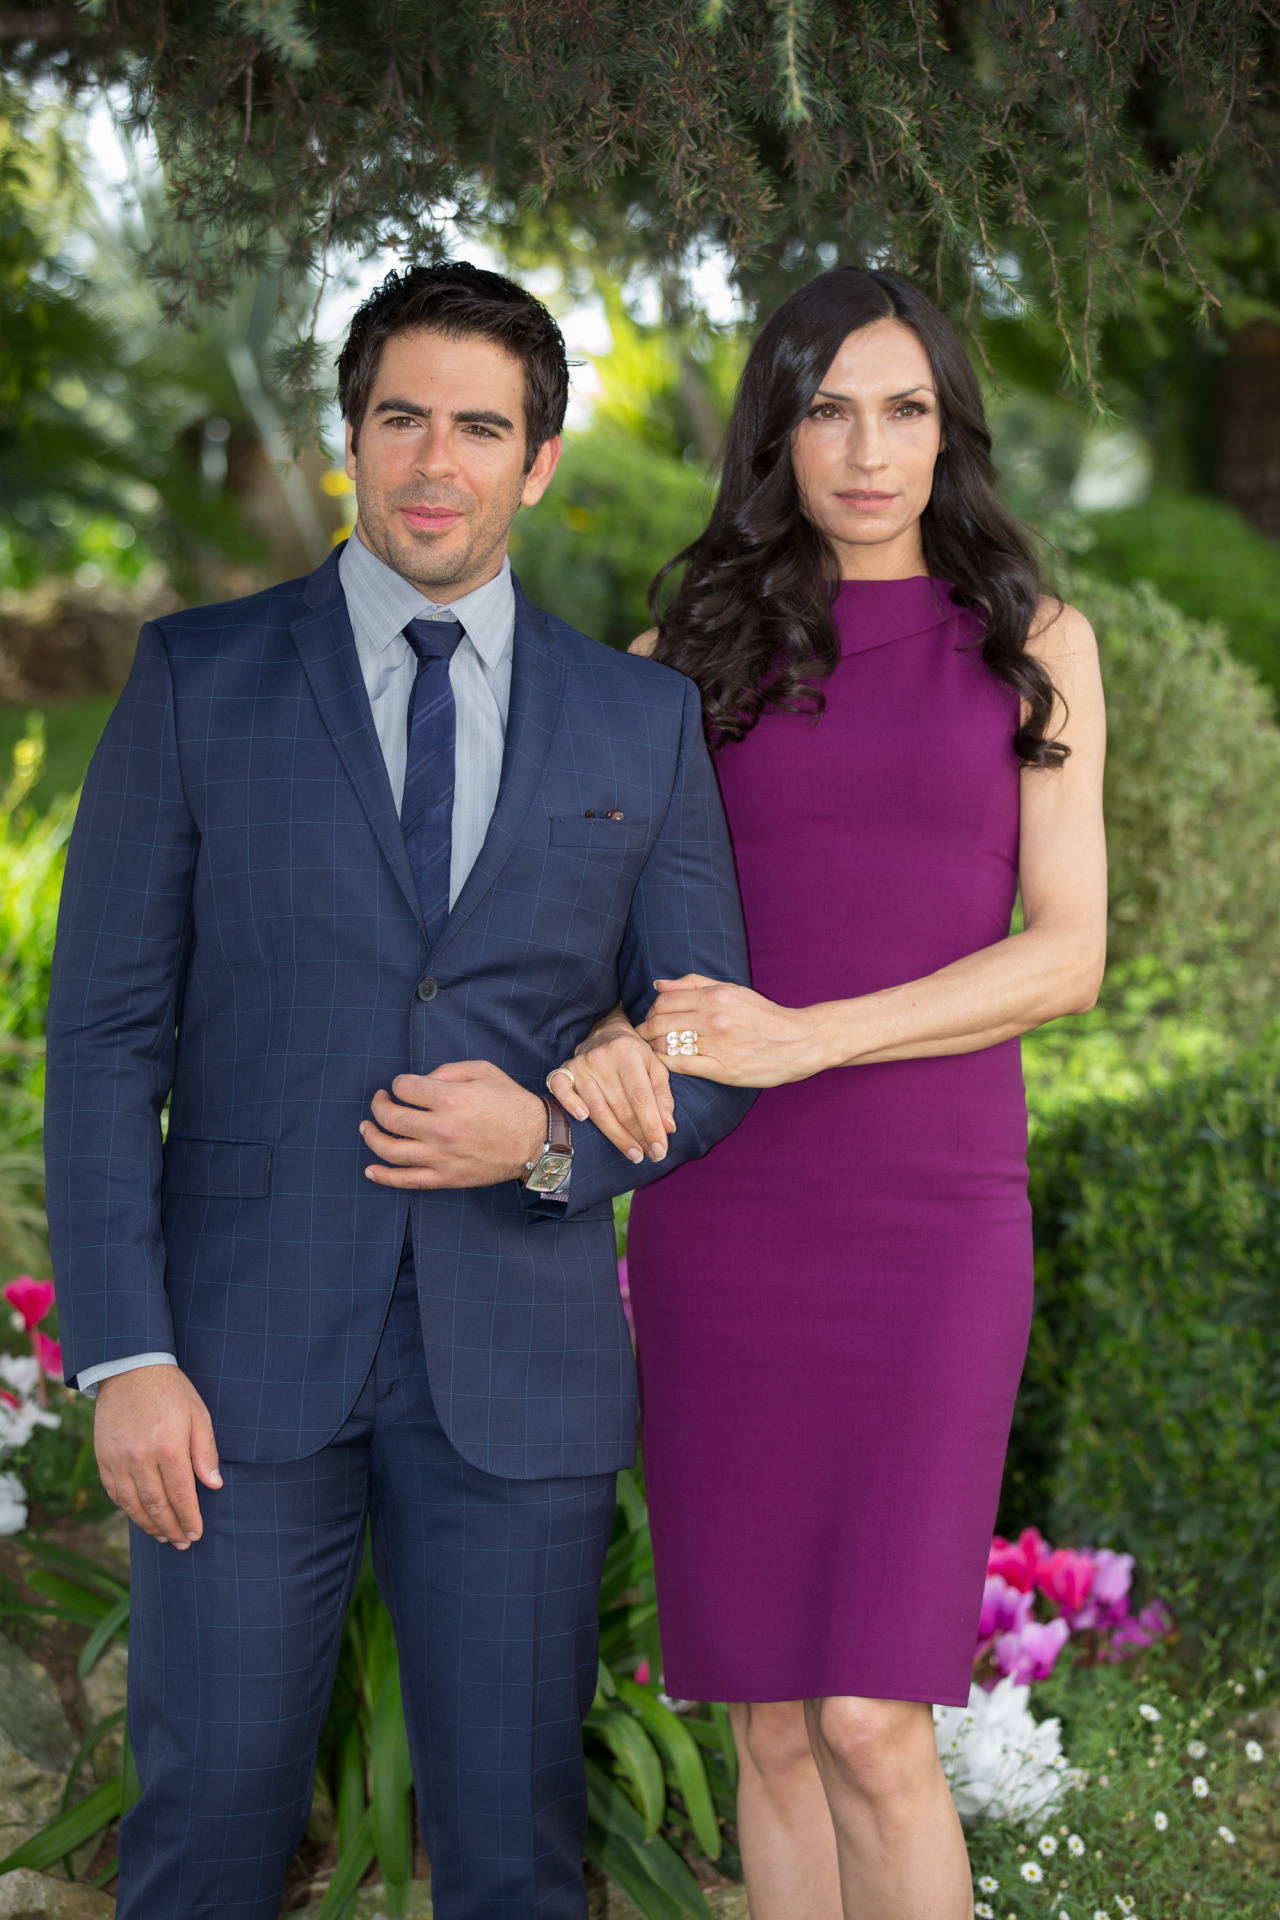 suicideblonde:  Eli Roth and Famke Janssen in Cannes, April 9th  HANDSOME!